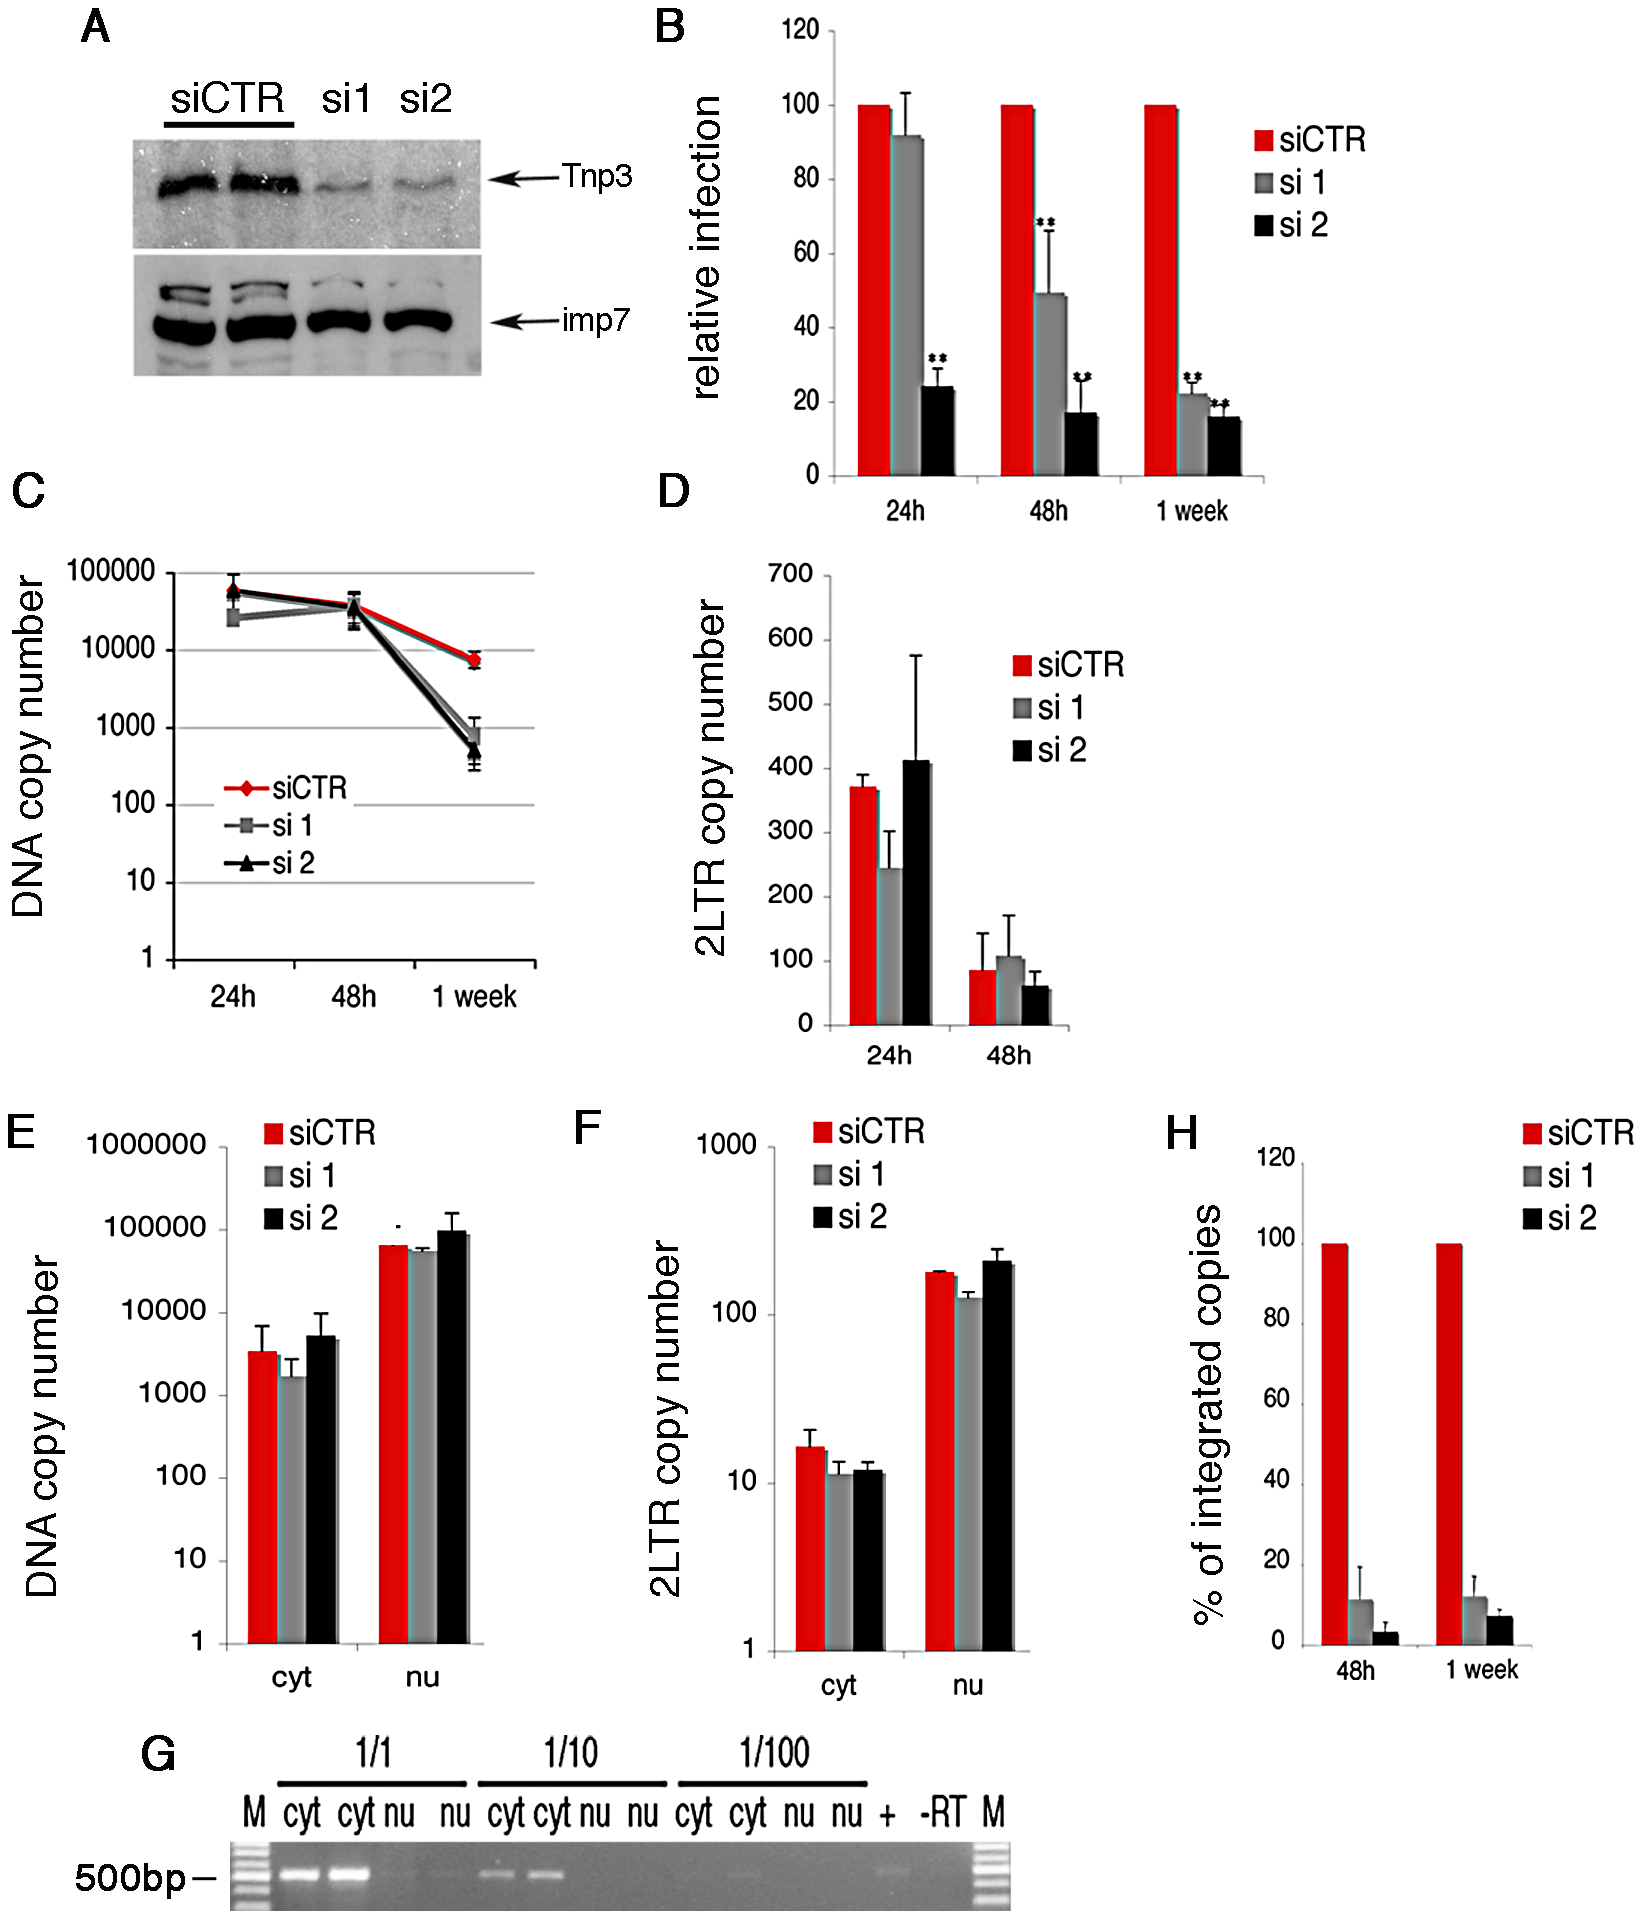 Tnp3 is required for efficient HIV-1 infection in HeLa cells.